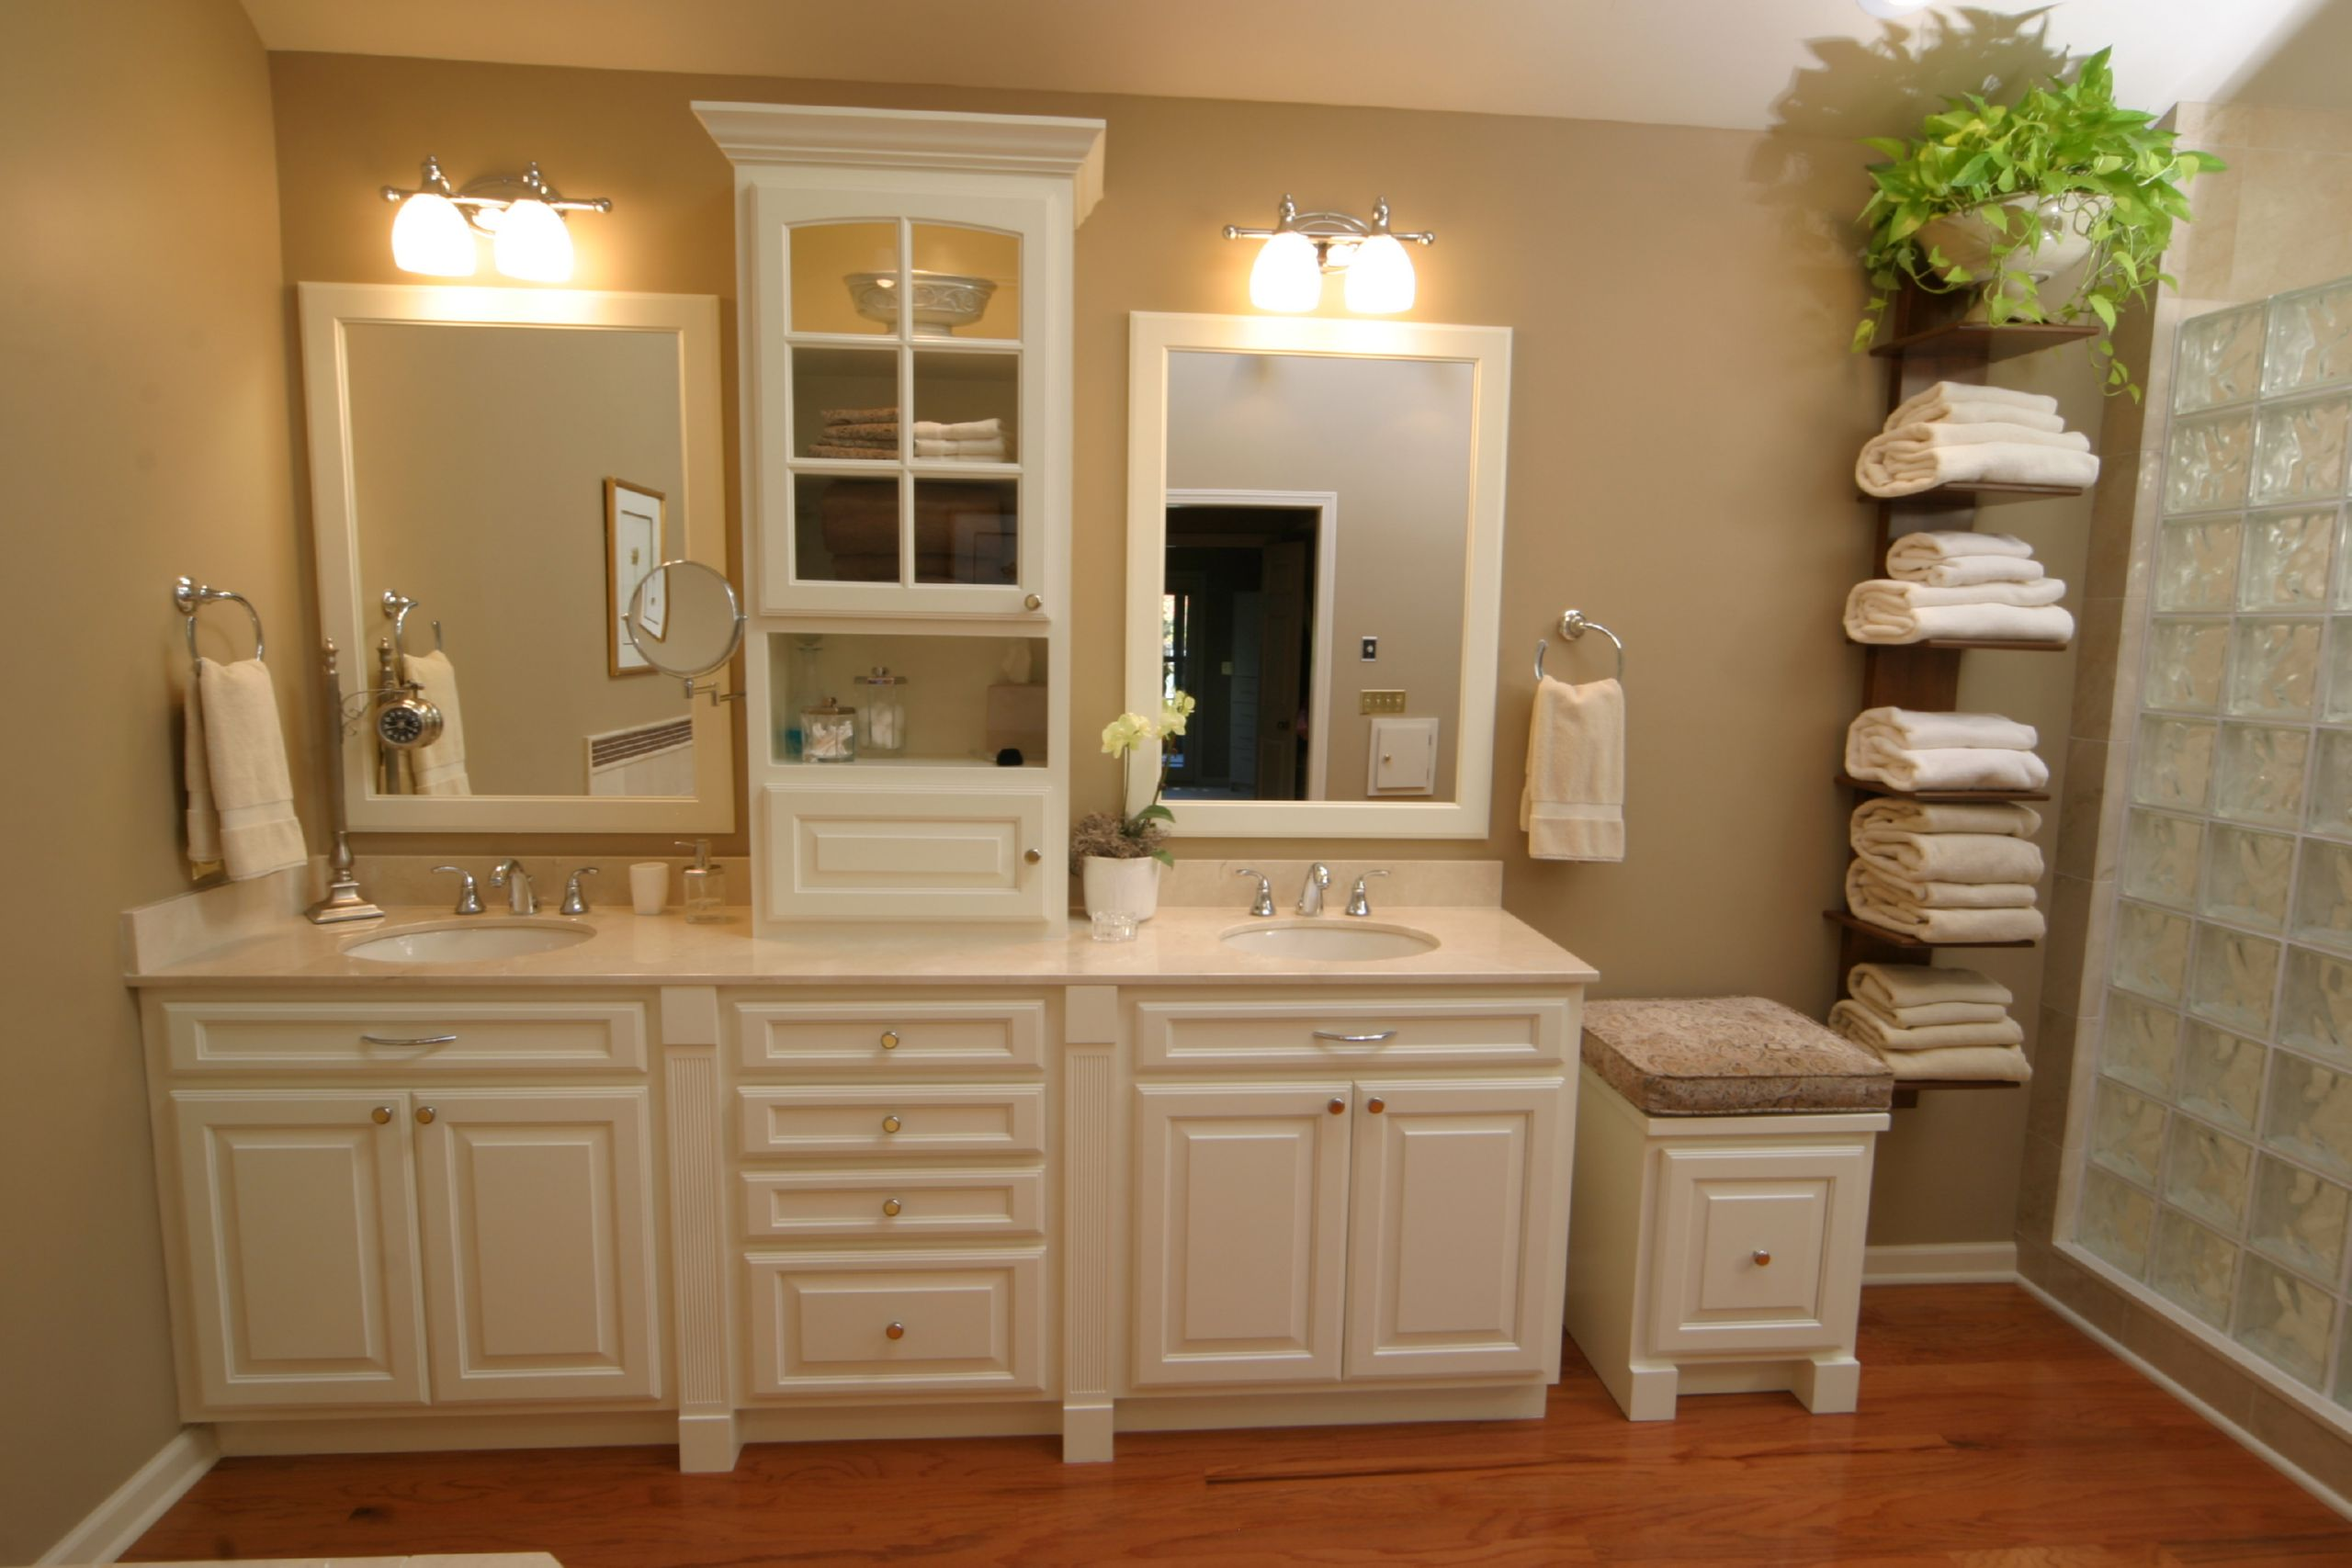 Bathroom remodeling bath remodel contractor for Bathroom renovation ideas pictures